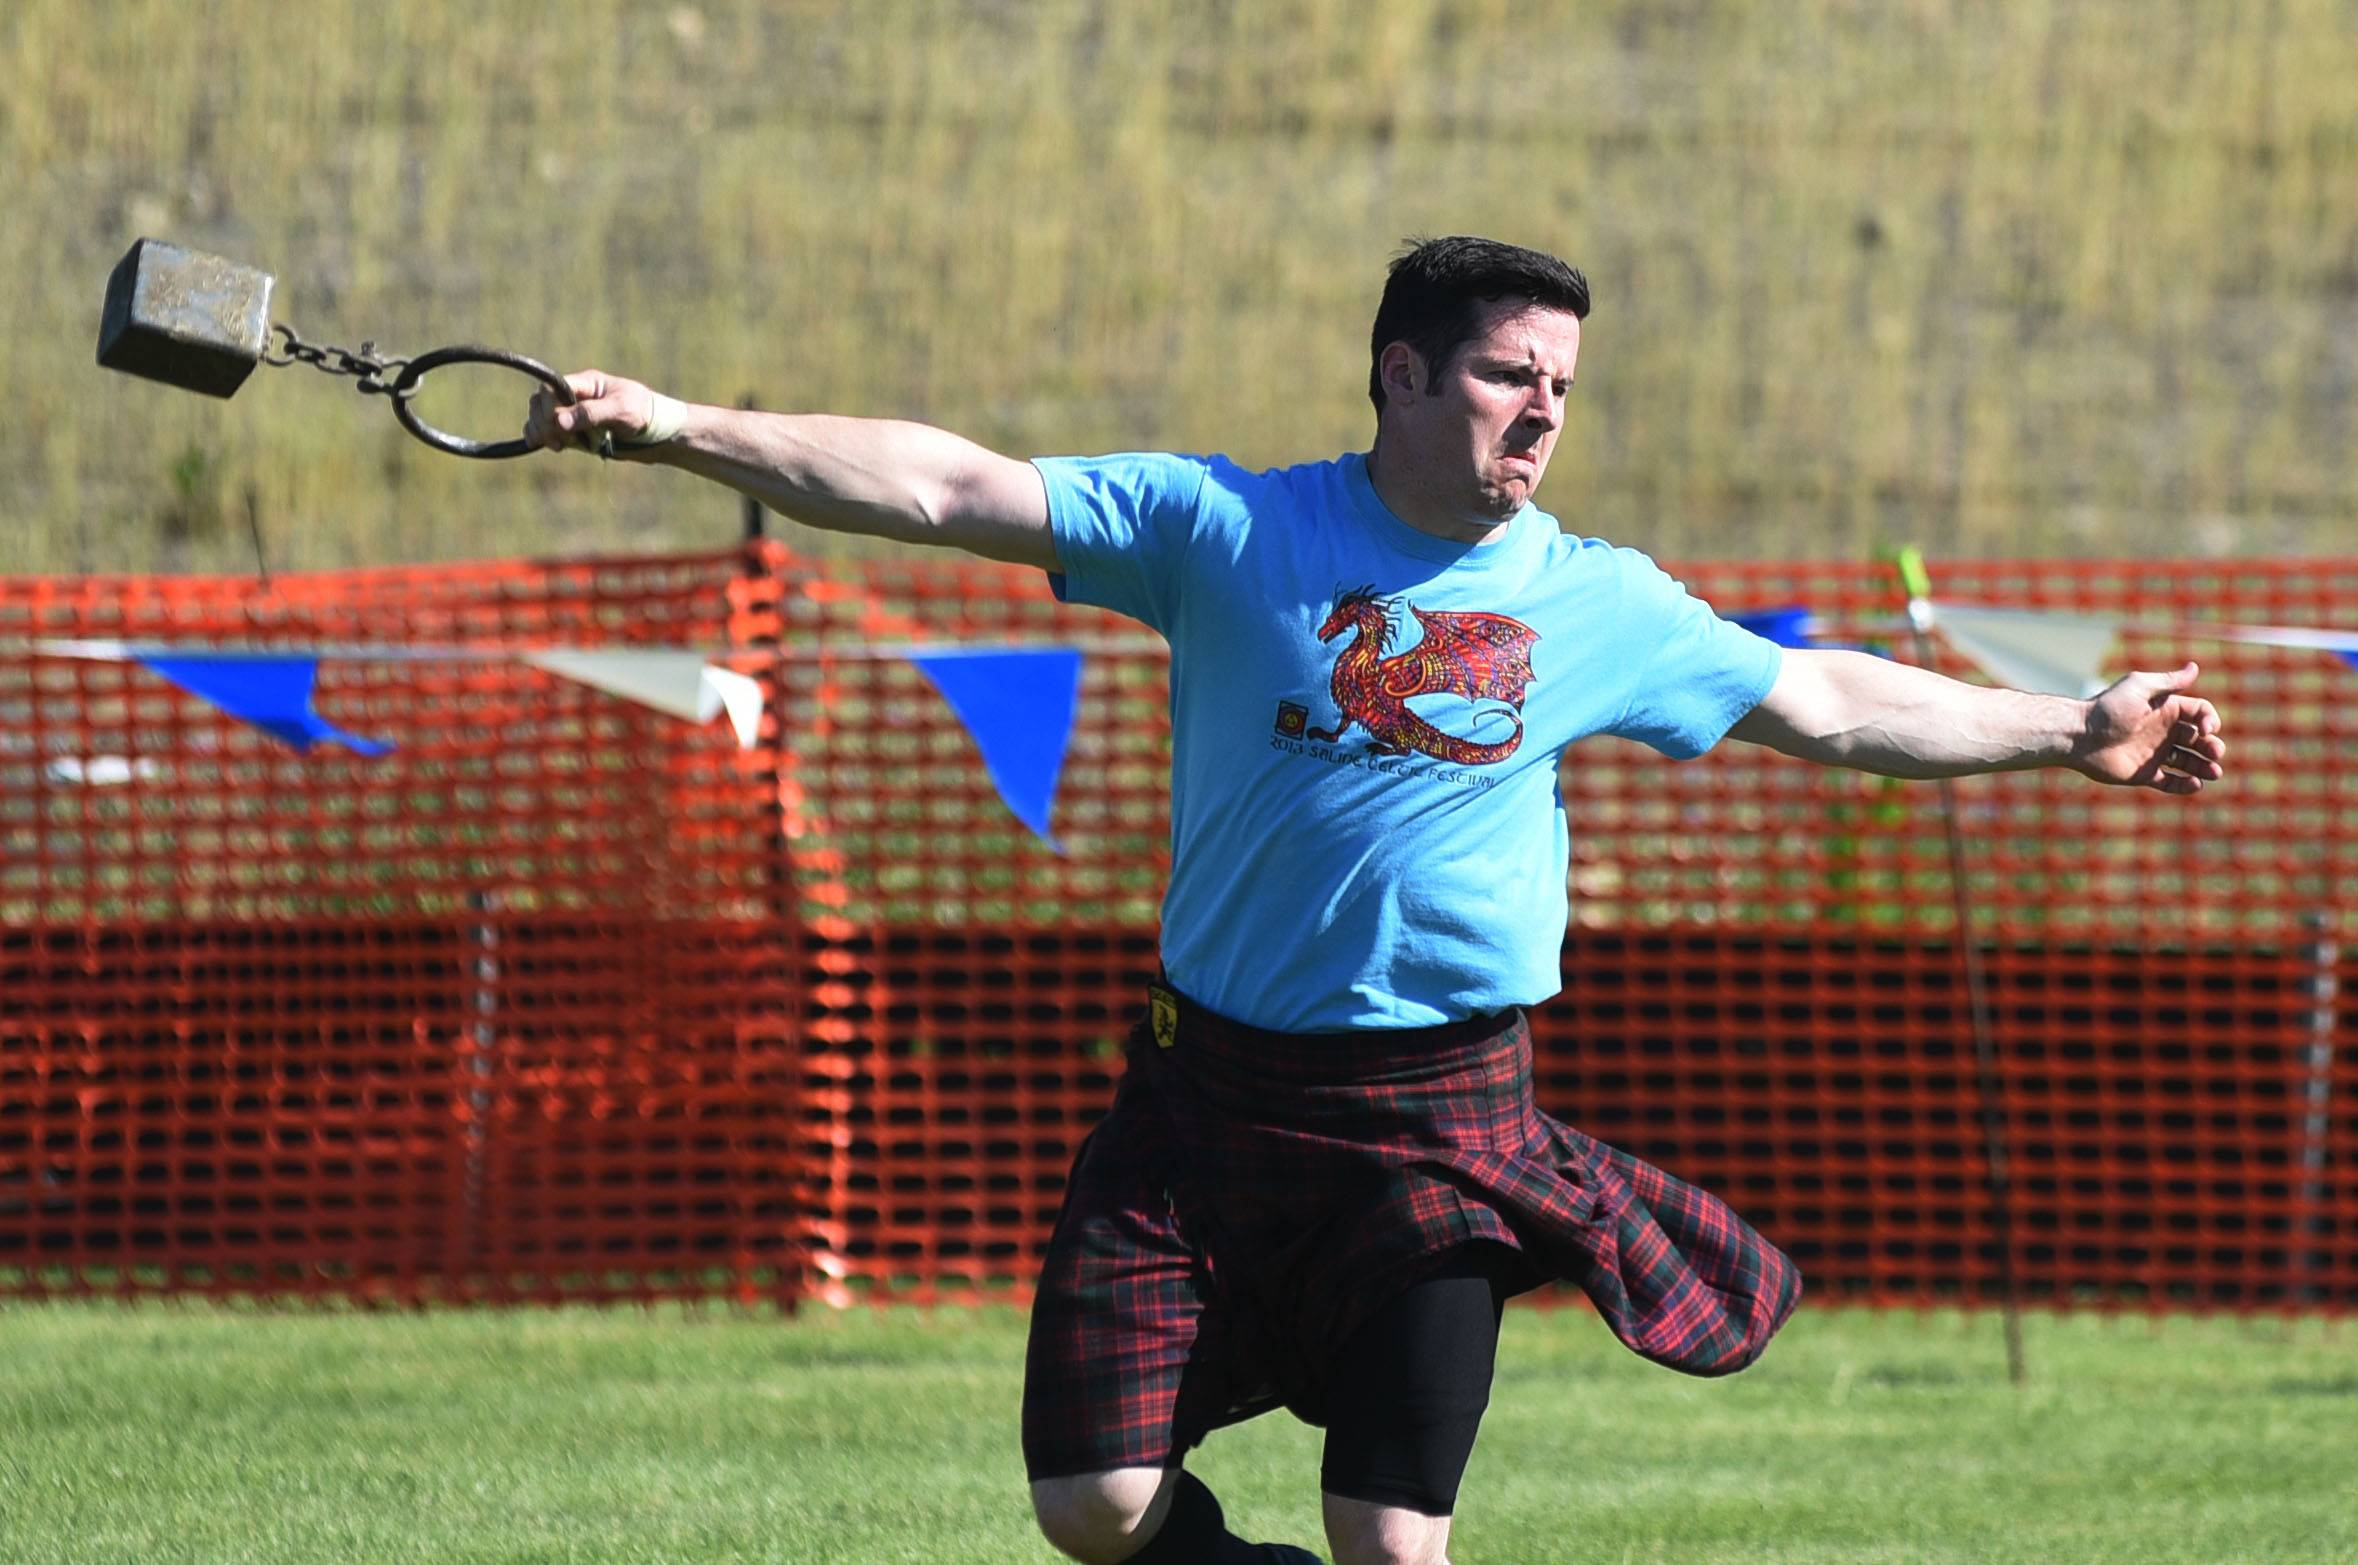 Greg Pilling of Indiana competed in the heavy athletics games at a previous Scottish Festival and Highland Games in Itasca.